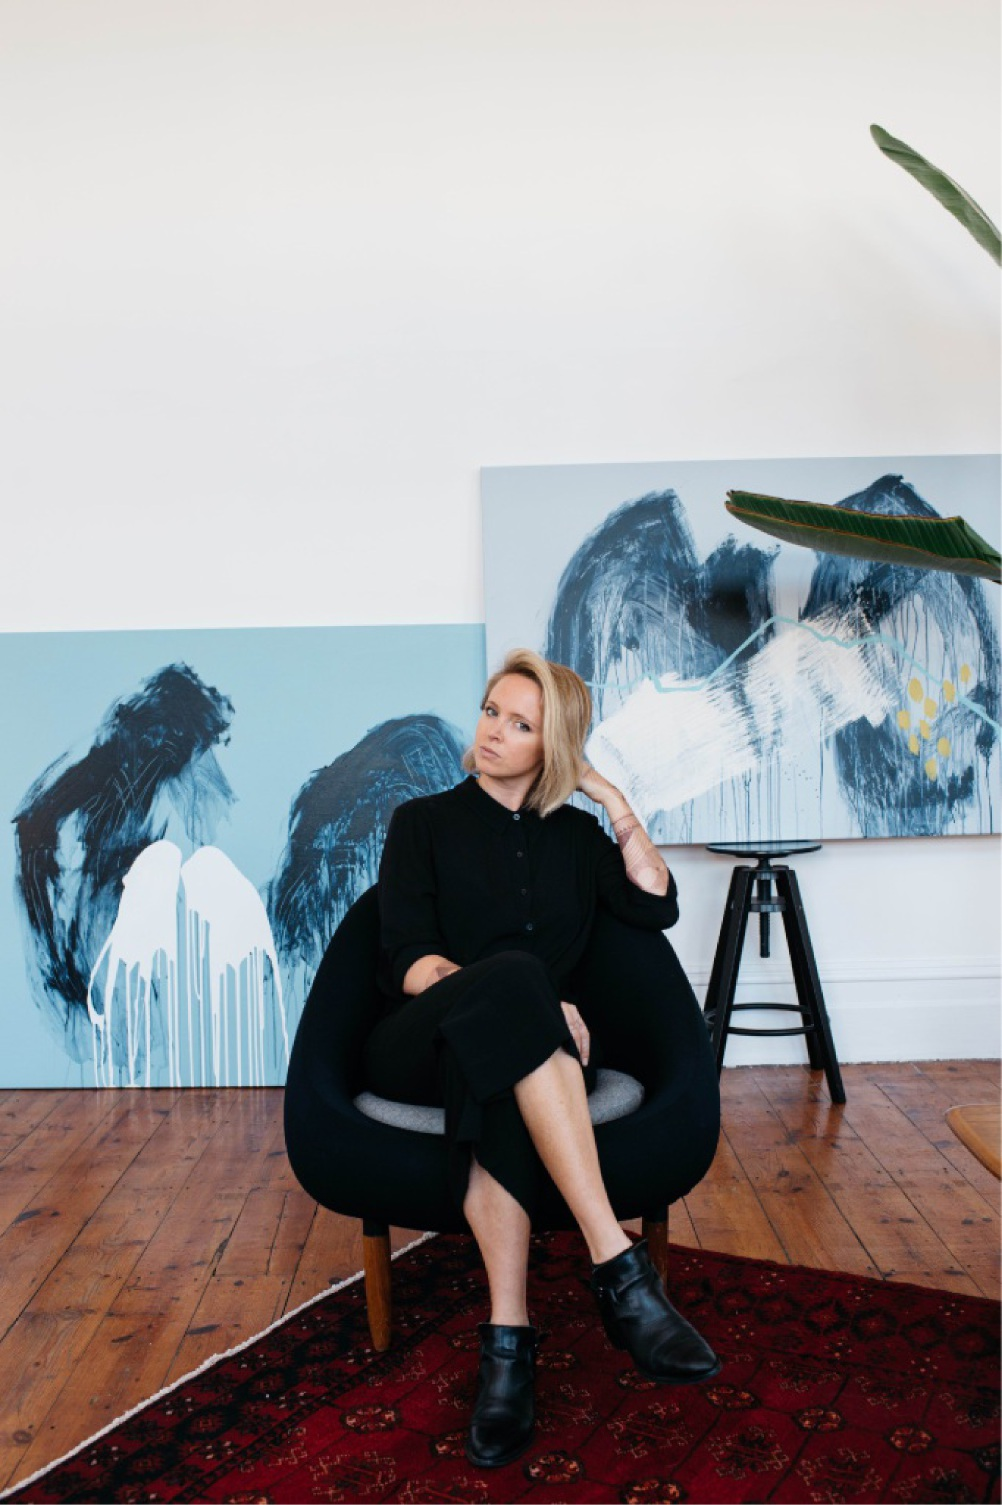 Artist Anya Brock has taken a more subdued style for her latest collection.